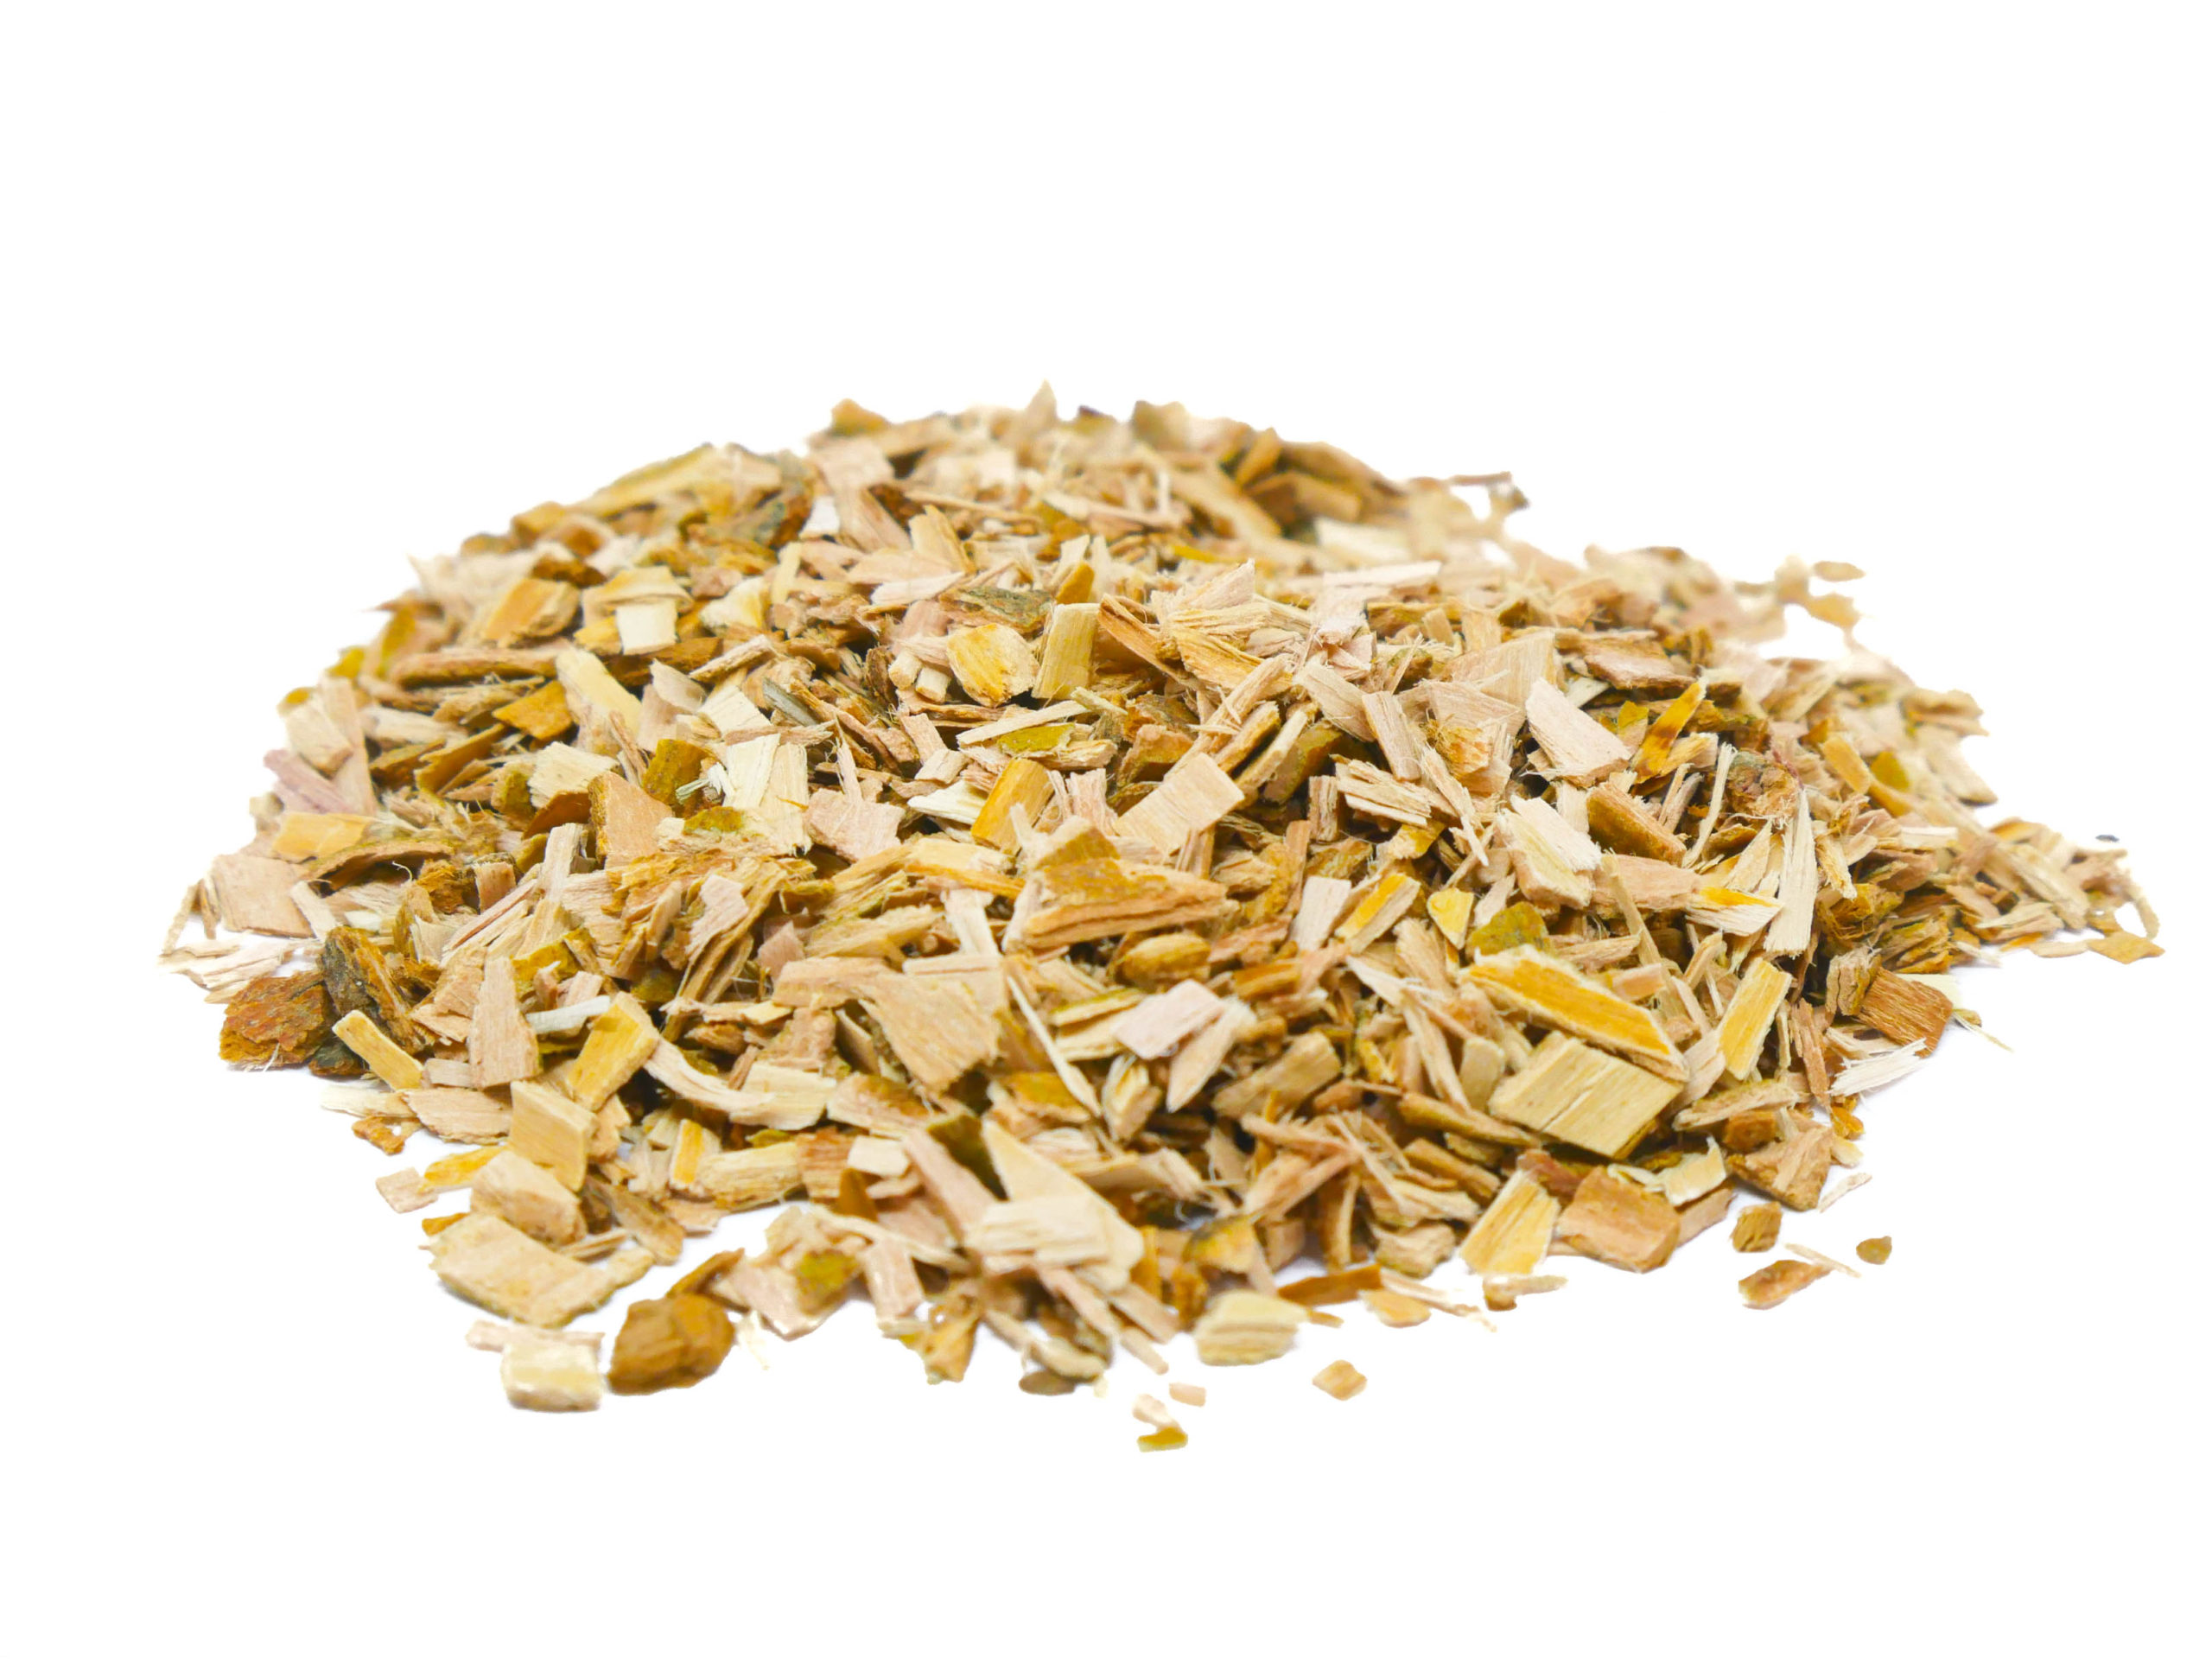 Order Willow bark from the Natural Spot